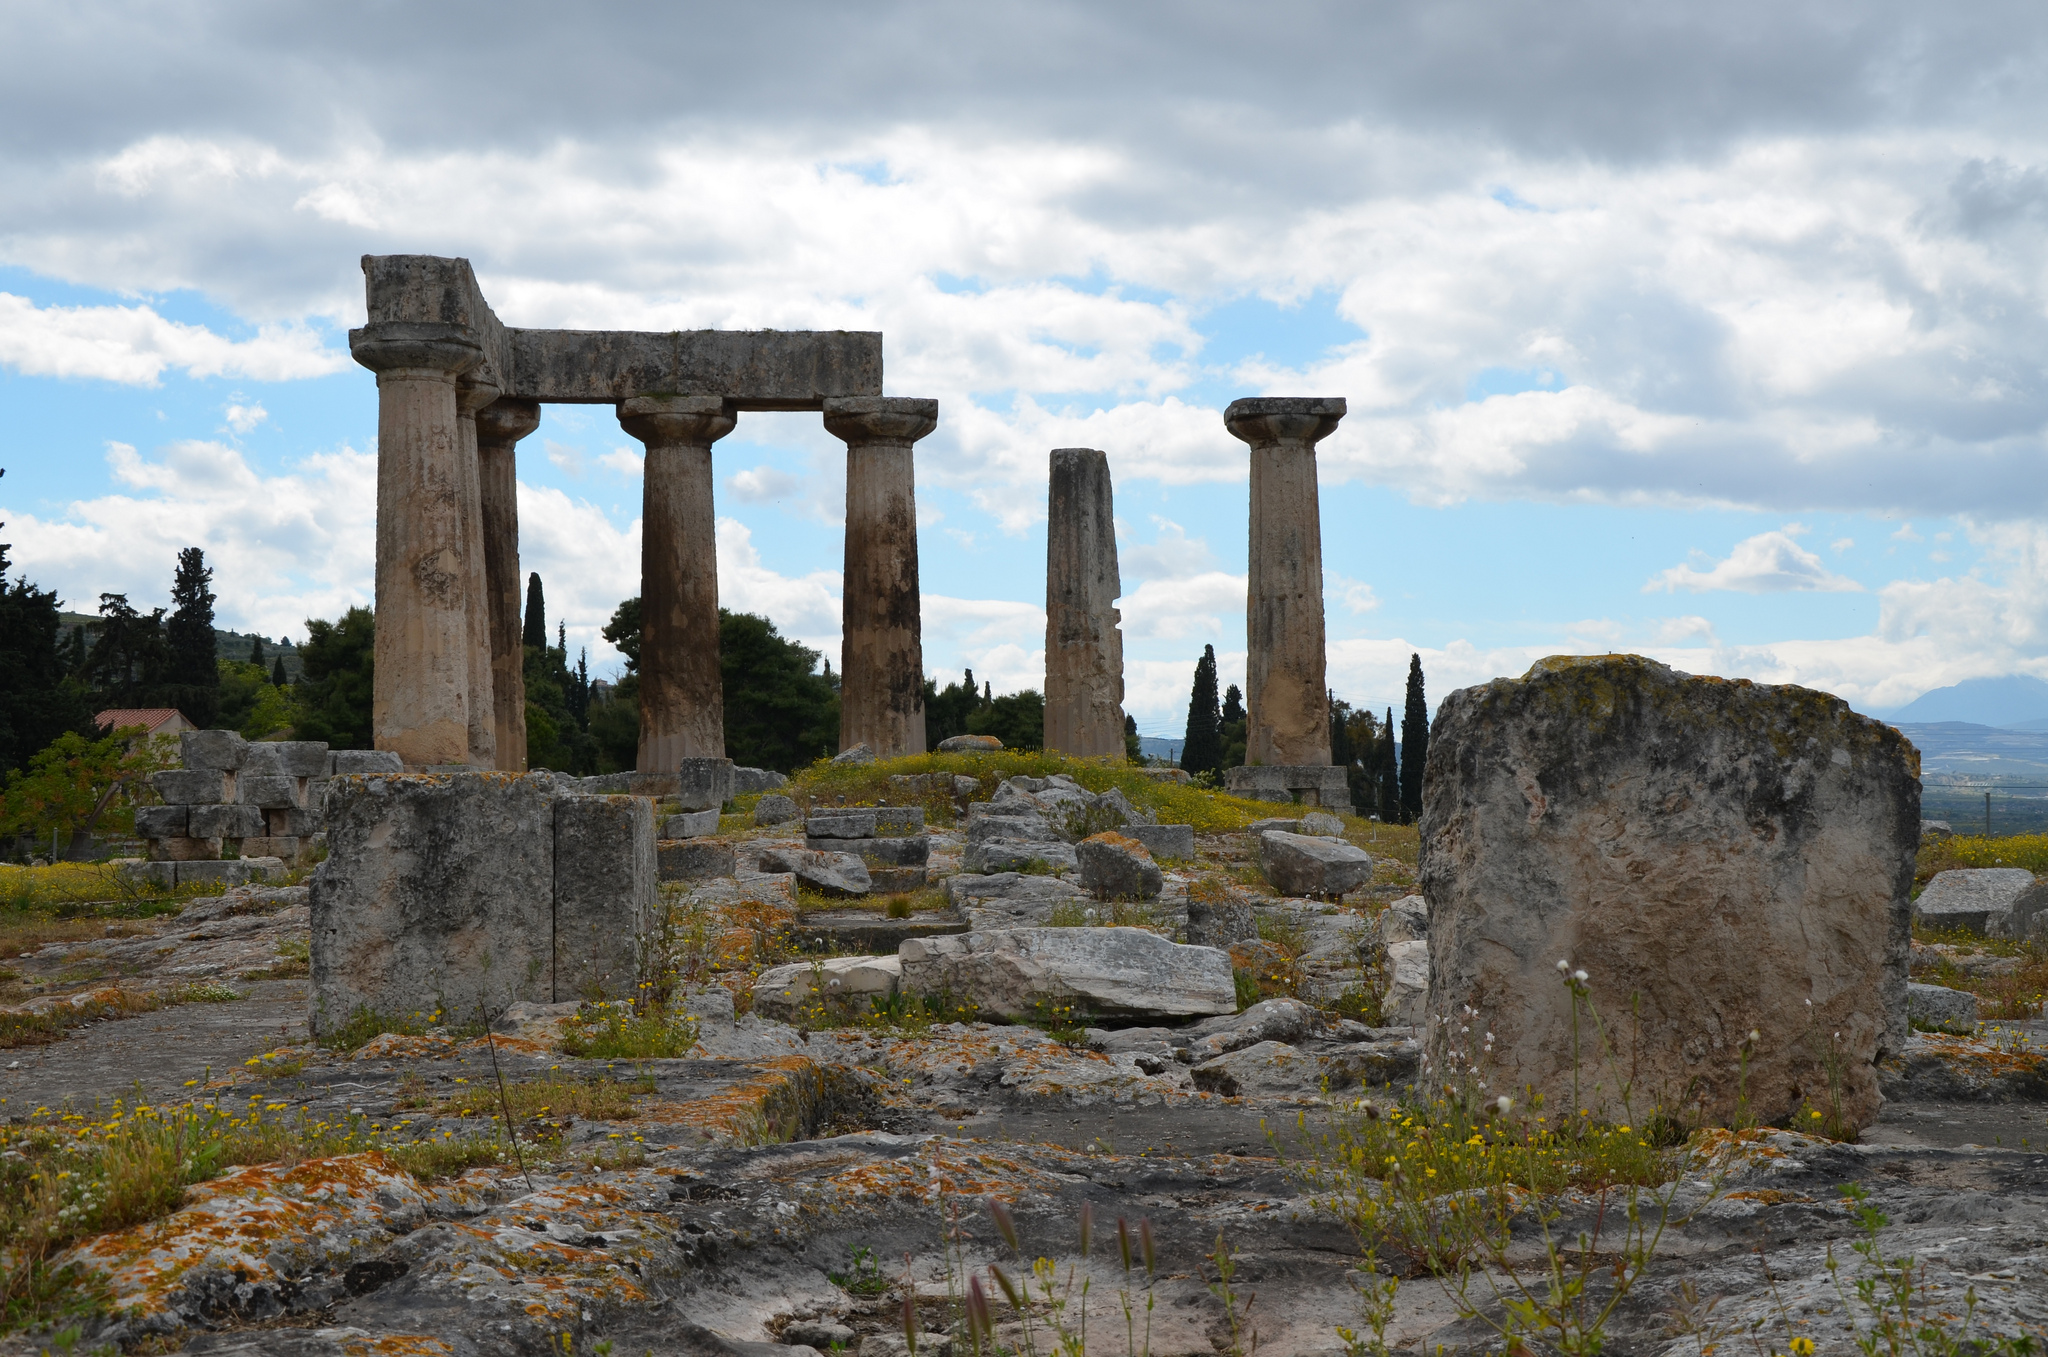 Corinth - Town in Greece - Sightseeing and Landmarks ...